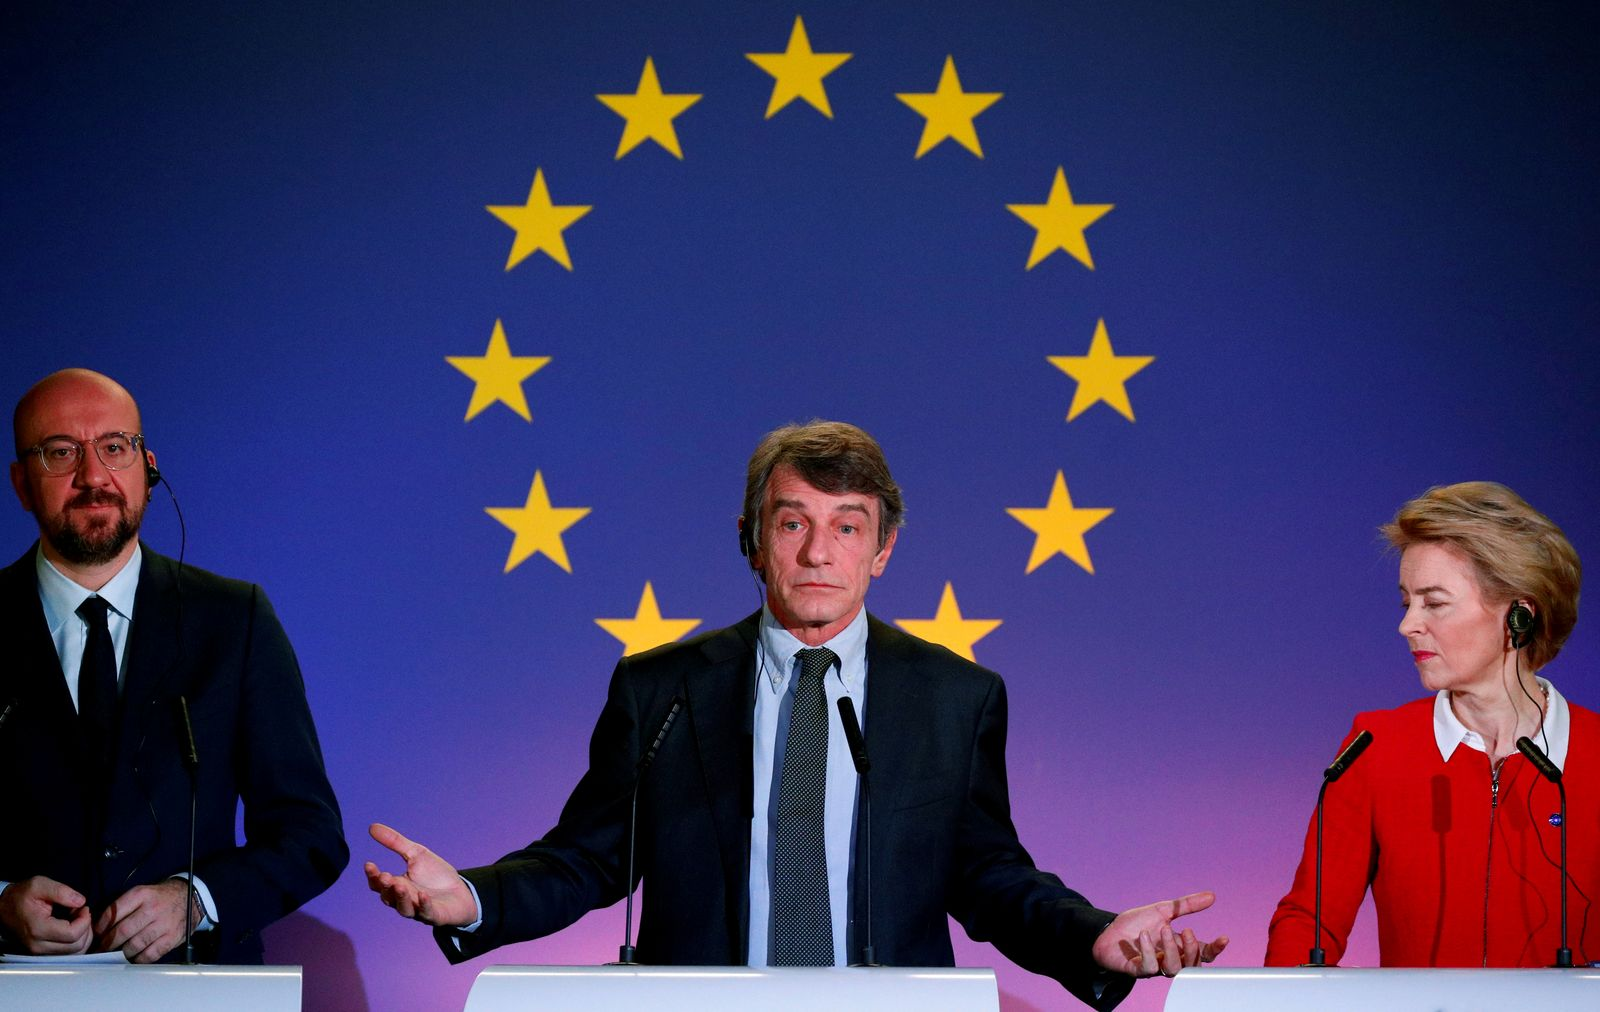 EU institutions leaders comment on the future of Europe in Brussels